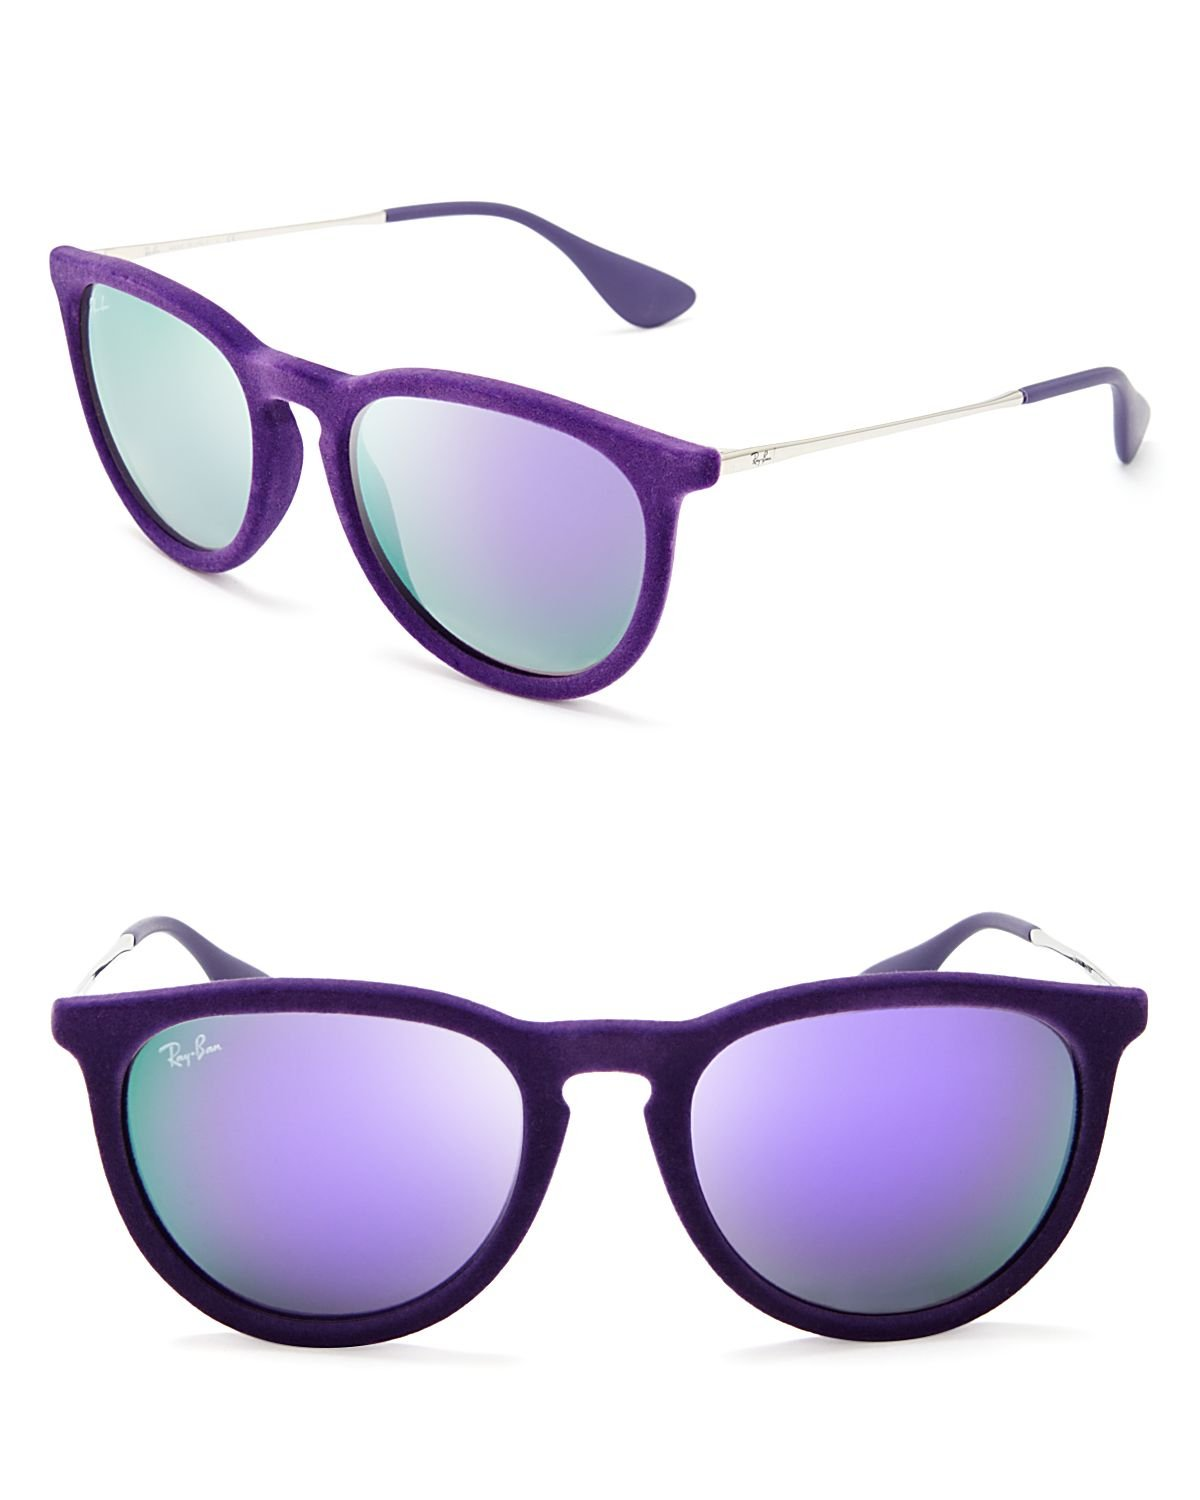 ray ban velvet round keyhole sunglasses  gallery. previously sold at: bloomingdale's · men's round sunglasses